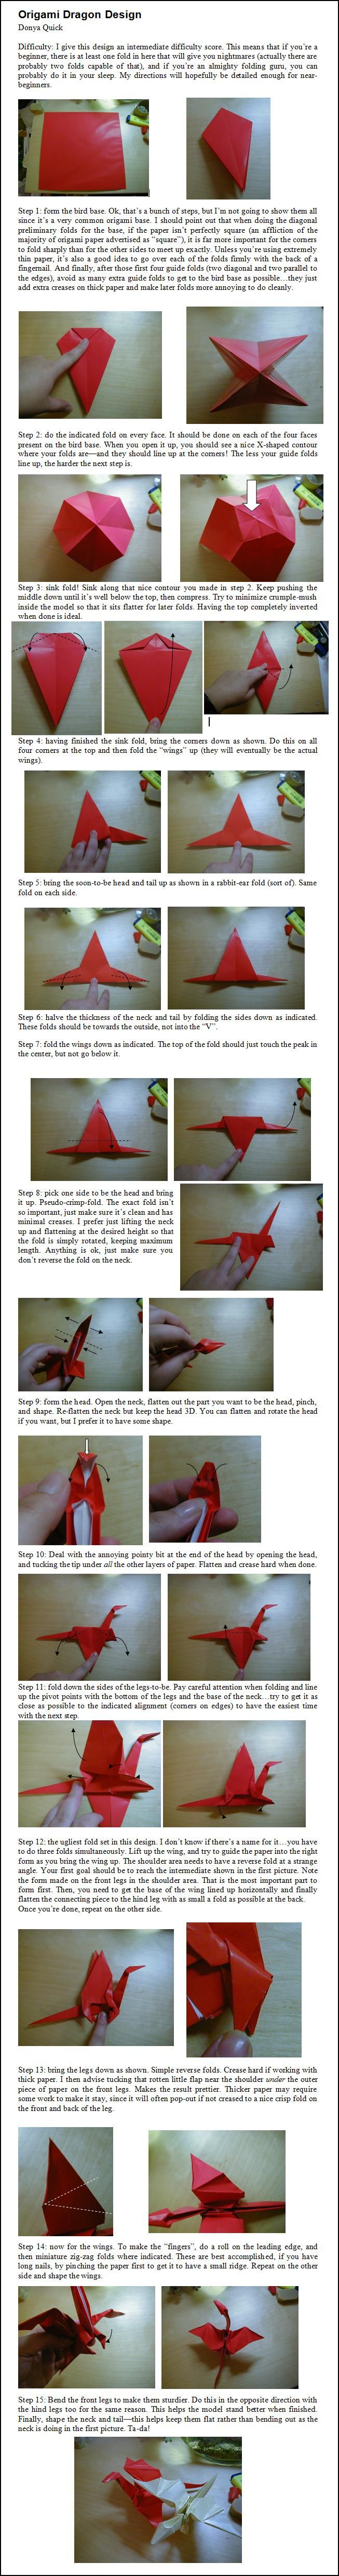 Origami Dragon - Instructions by ~DonyaQuick on deviantART